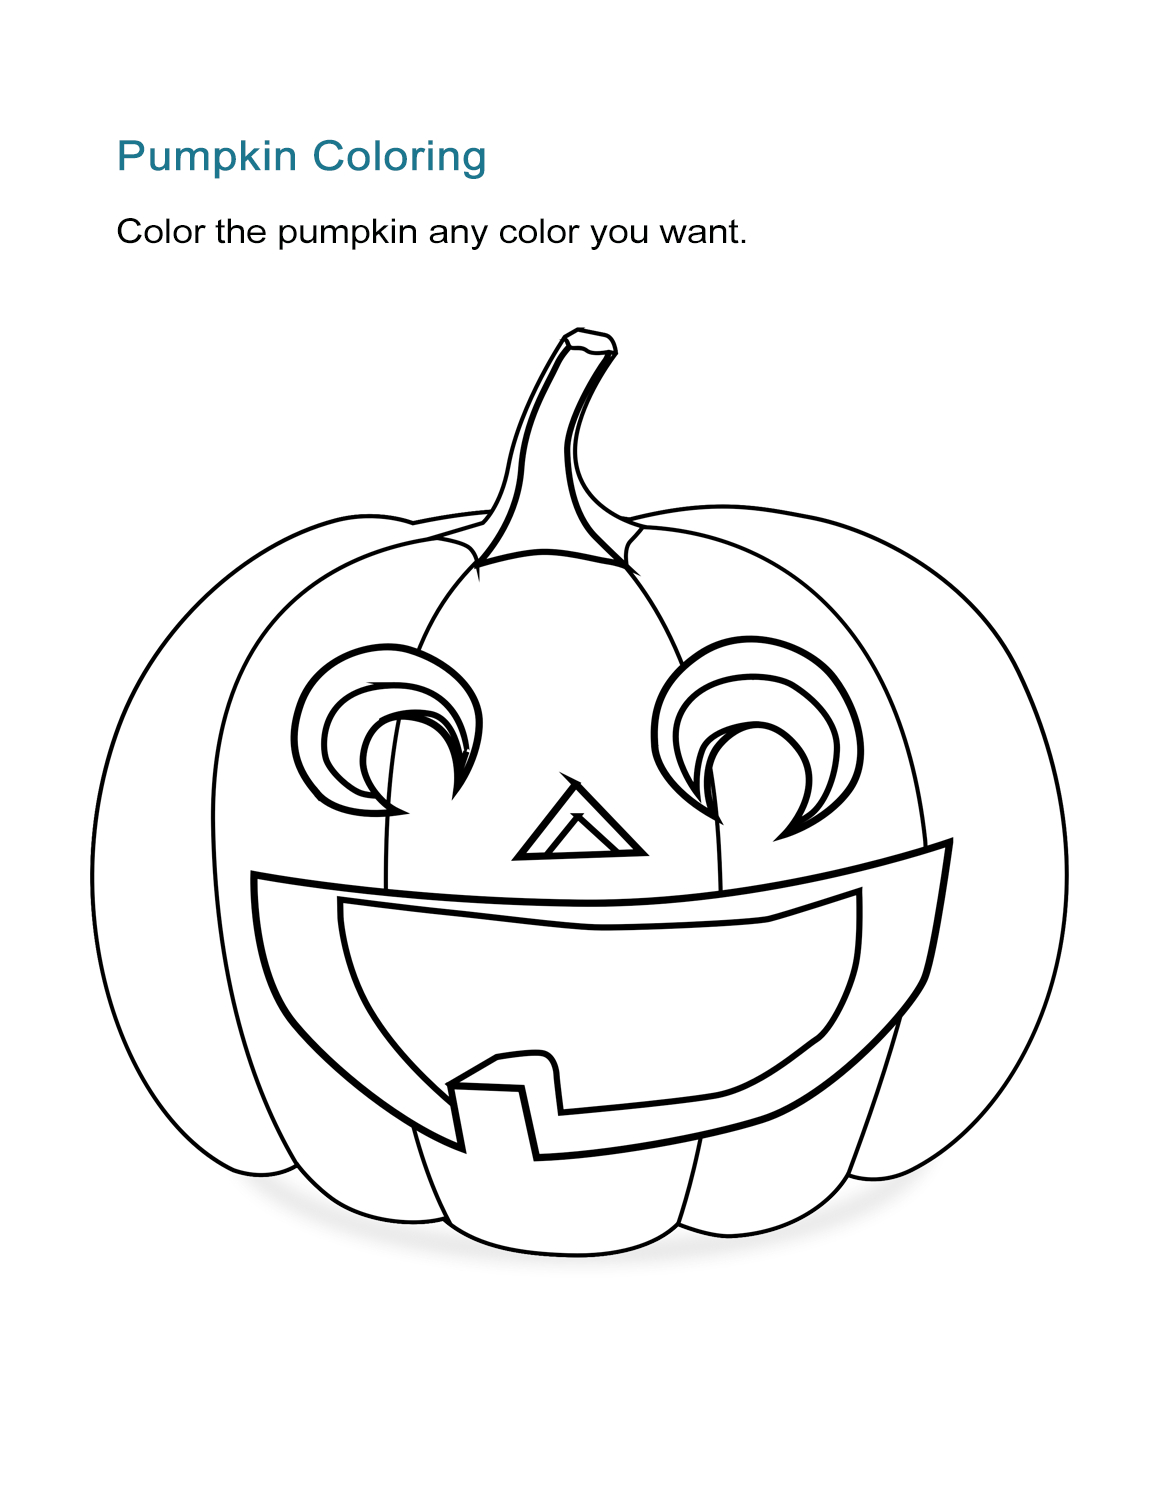 Free Scary Halloween Coloring Pages Coloring Ideas Free Scary Halloween Printables Printable